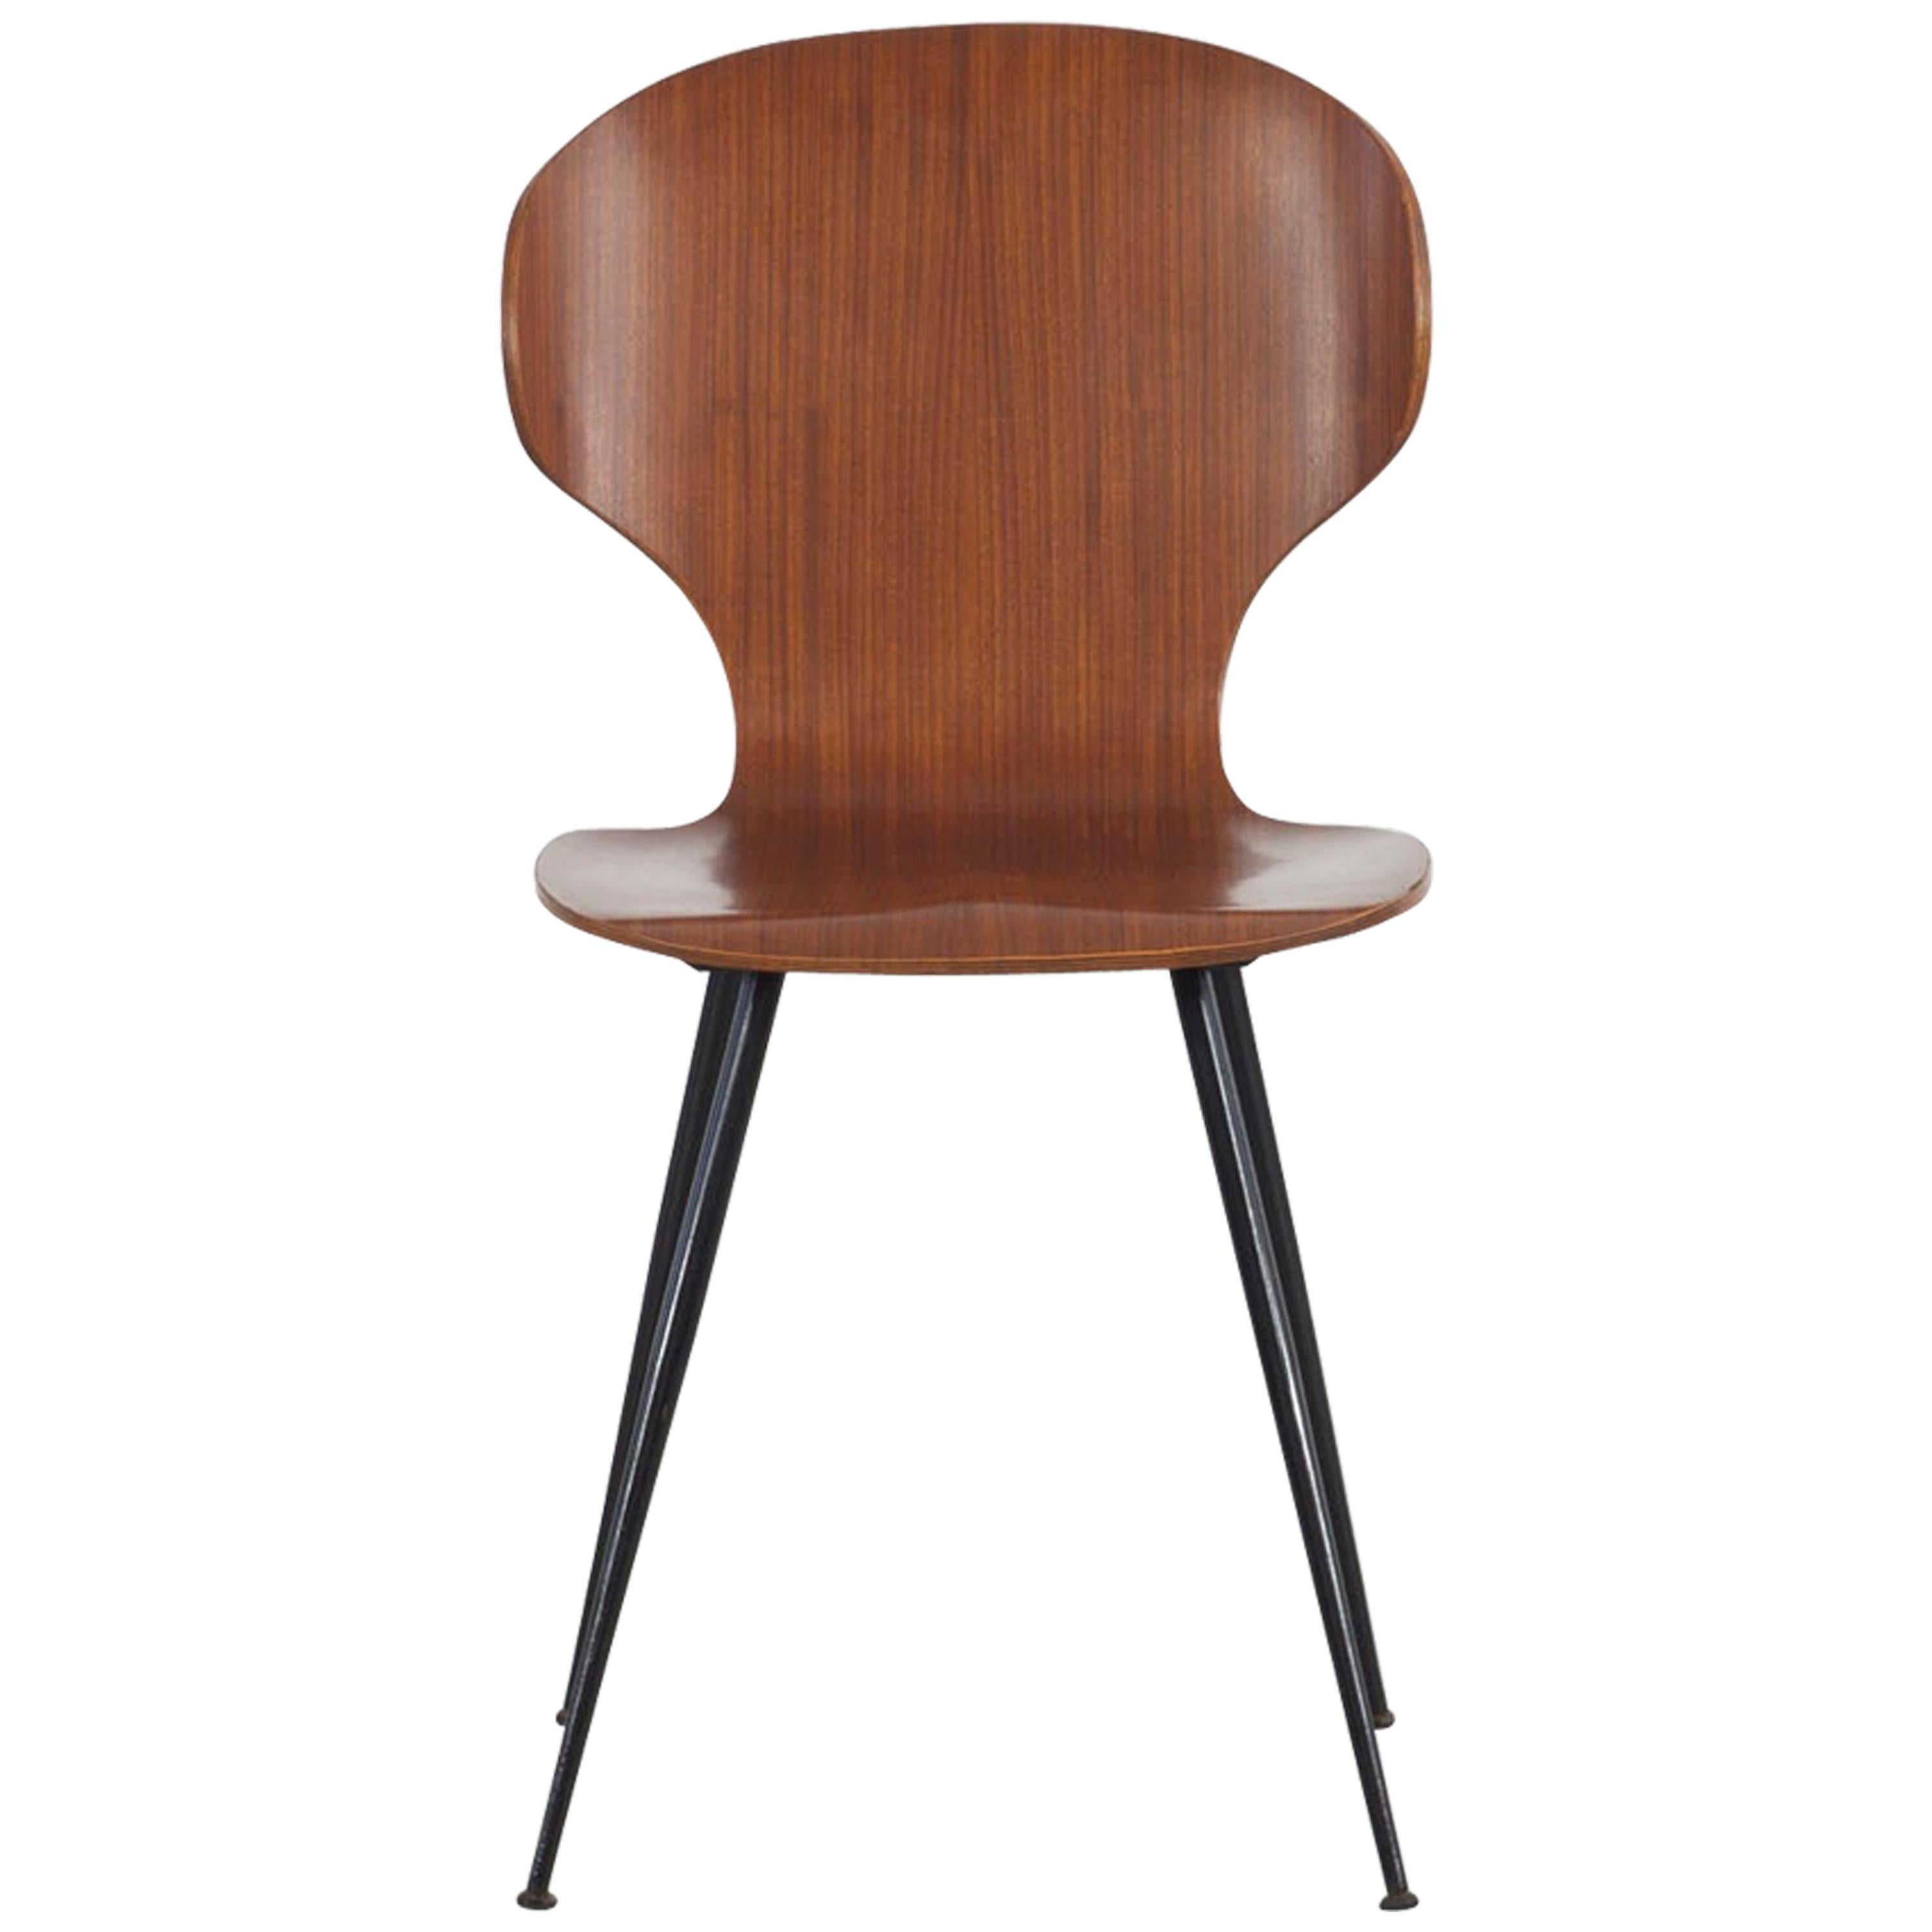 Set of Six Bentwood Chairs, Design by Carlo Ratti, Italy, 1950s